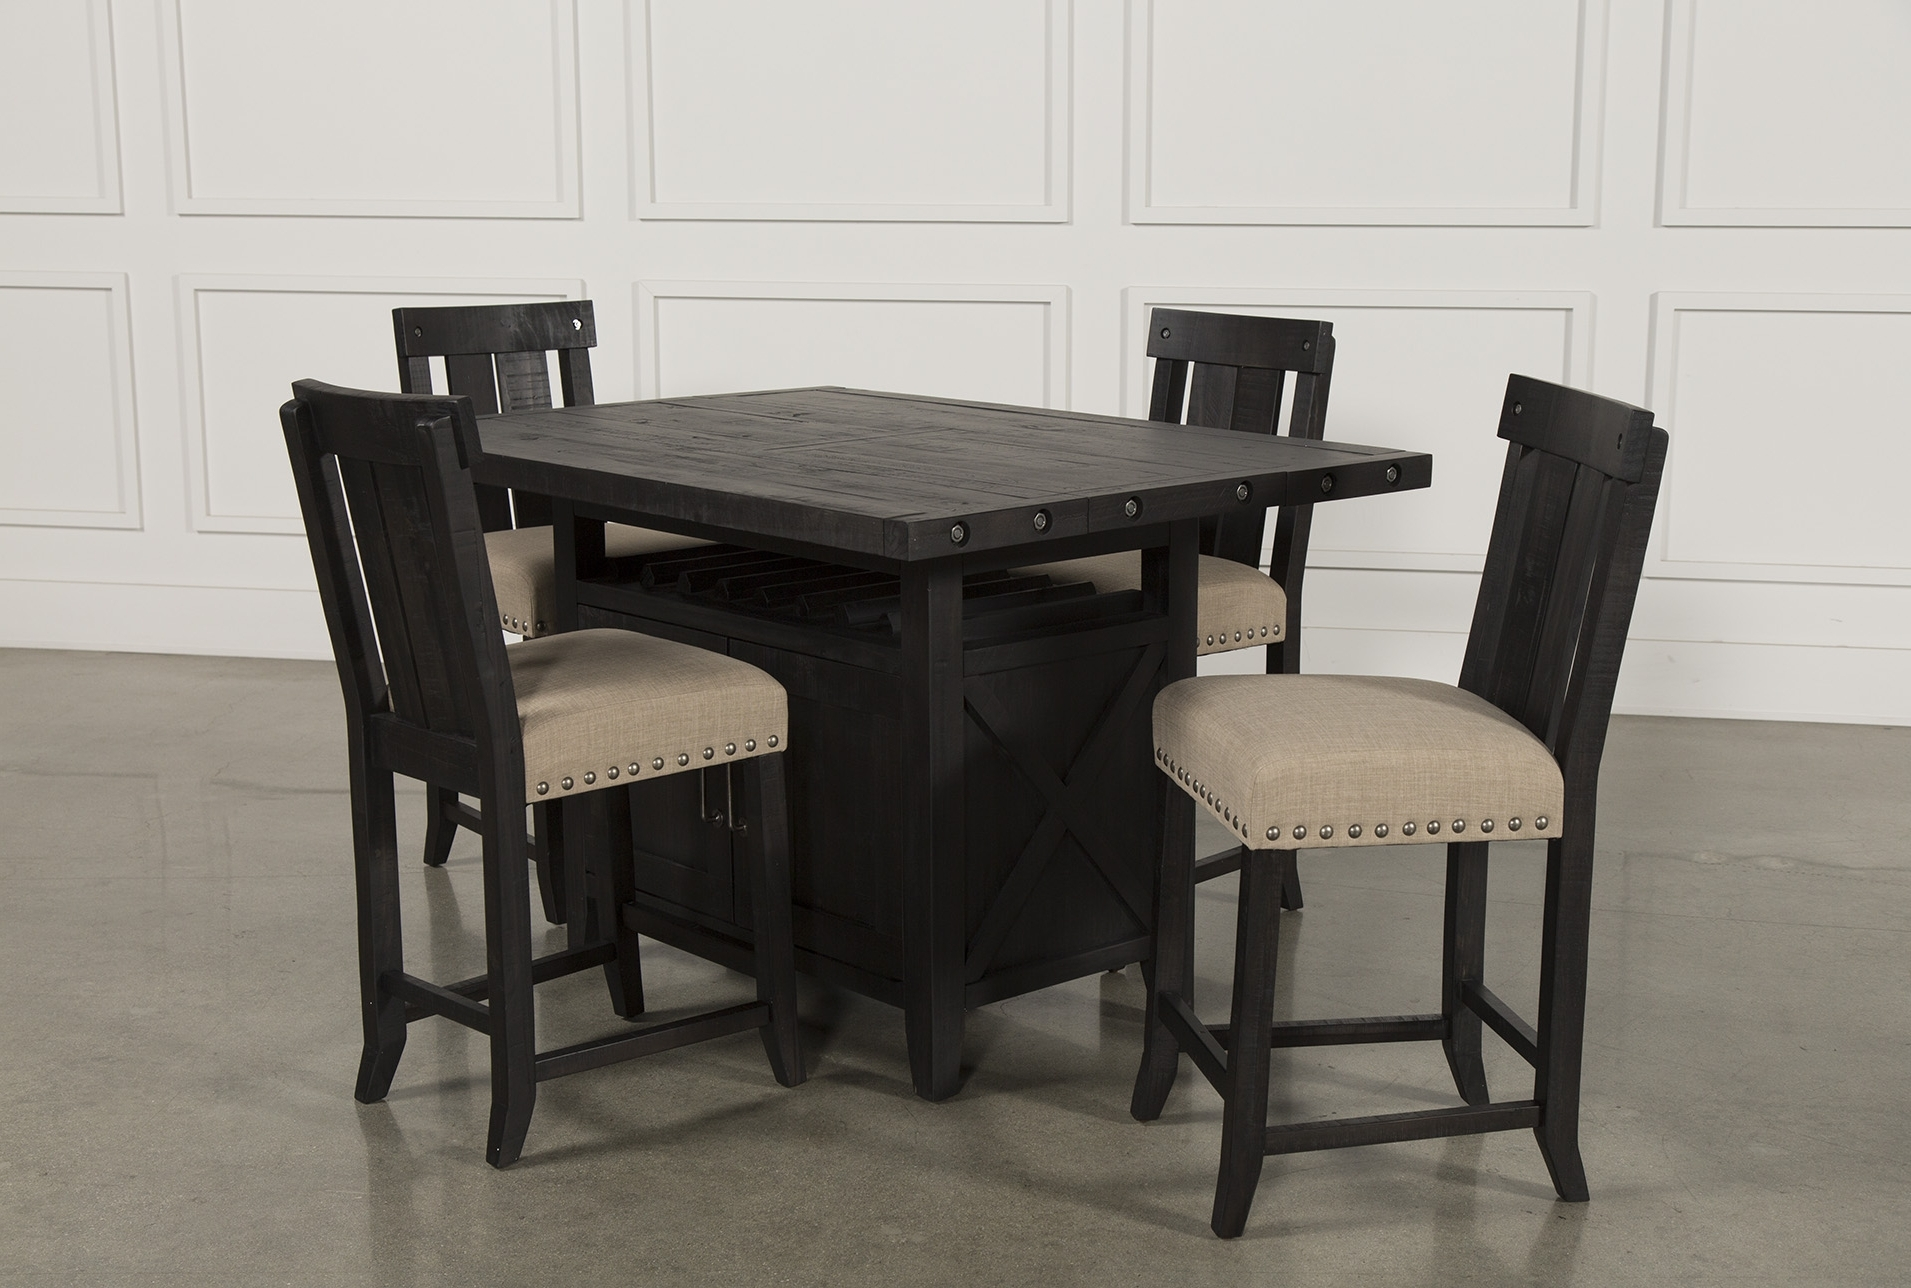 Global Furniture Bar Table Black Regarding Newest Jaxon 7 Piece Rectangle Dining Sets With Wood Chairs (View 21 of 25)